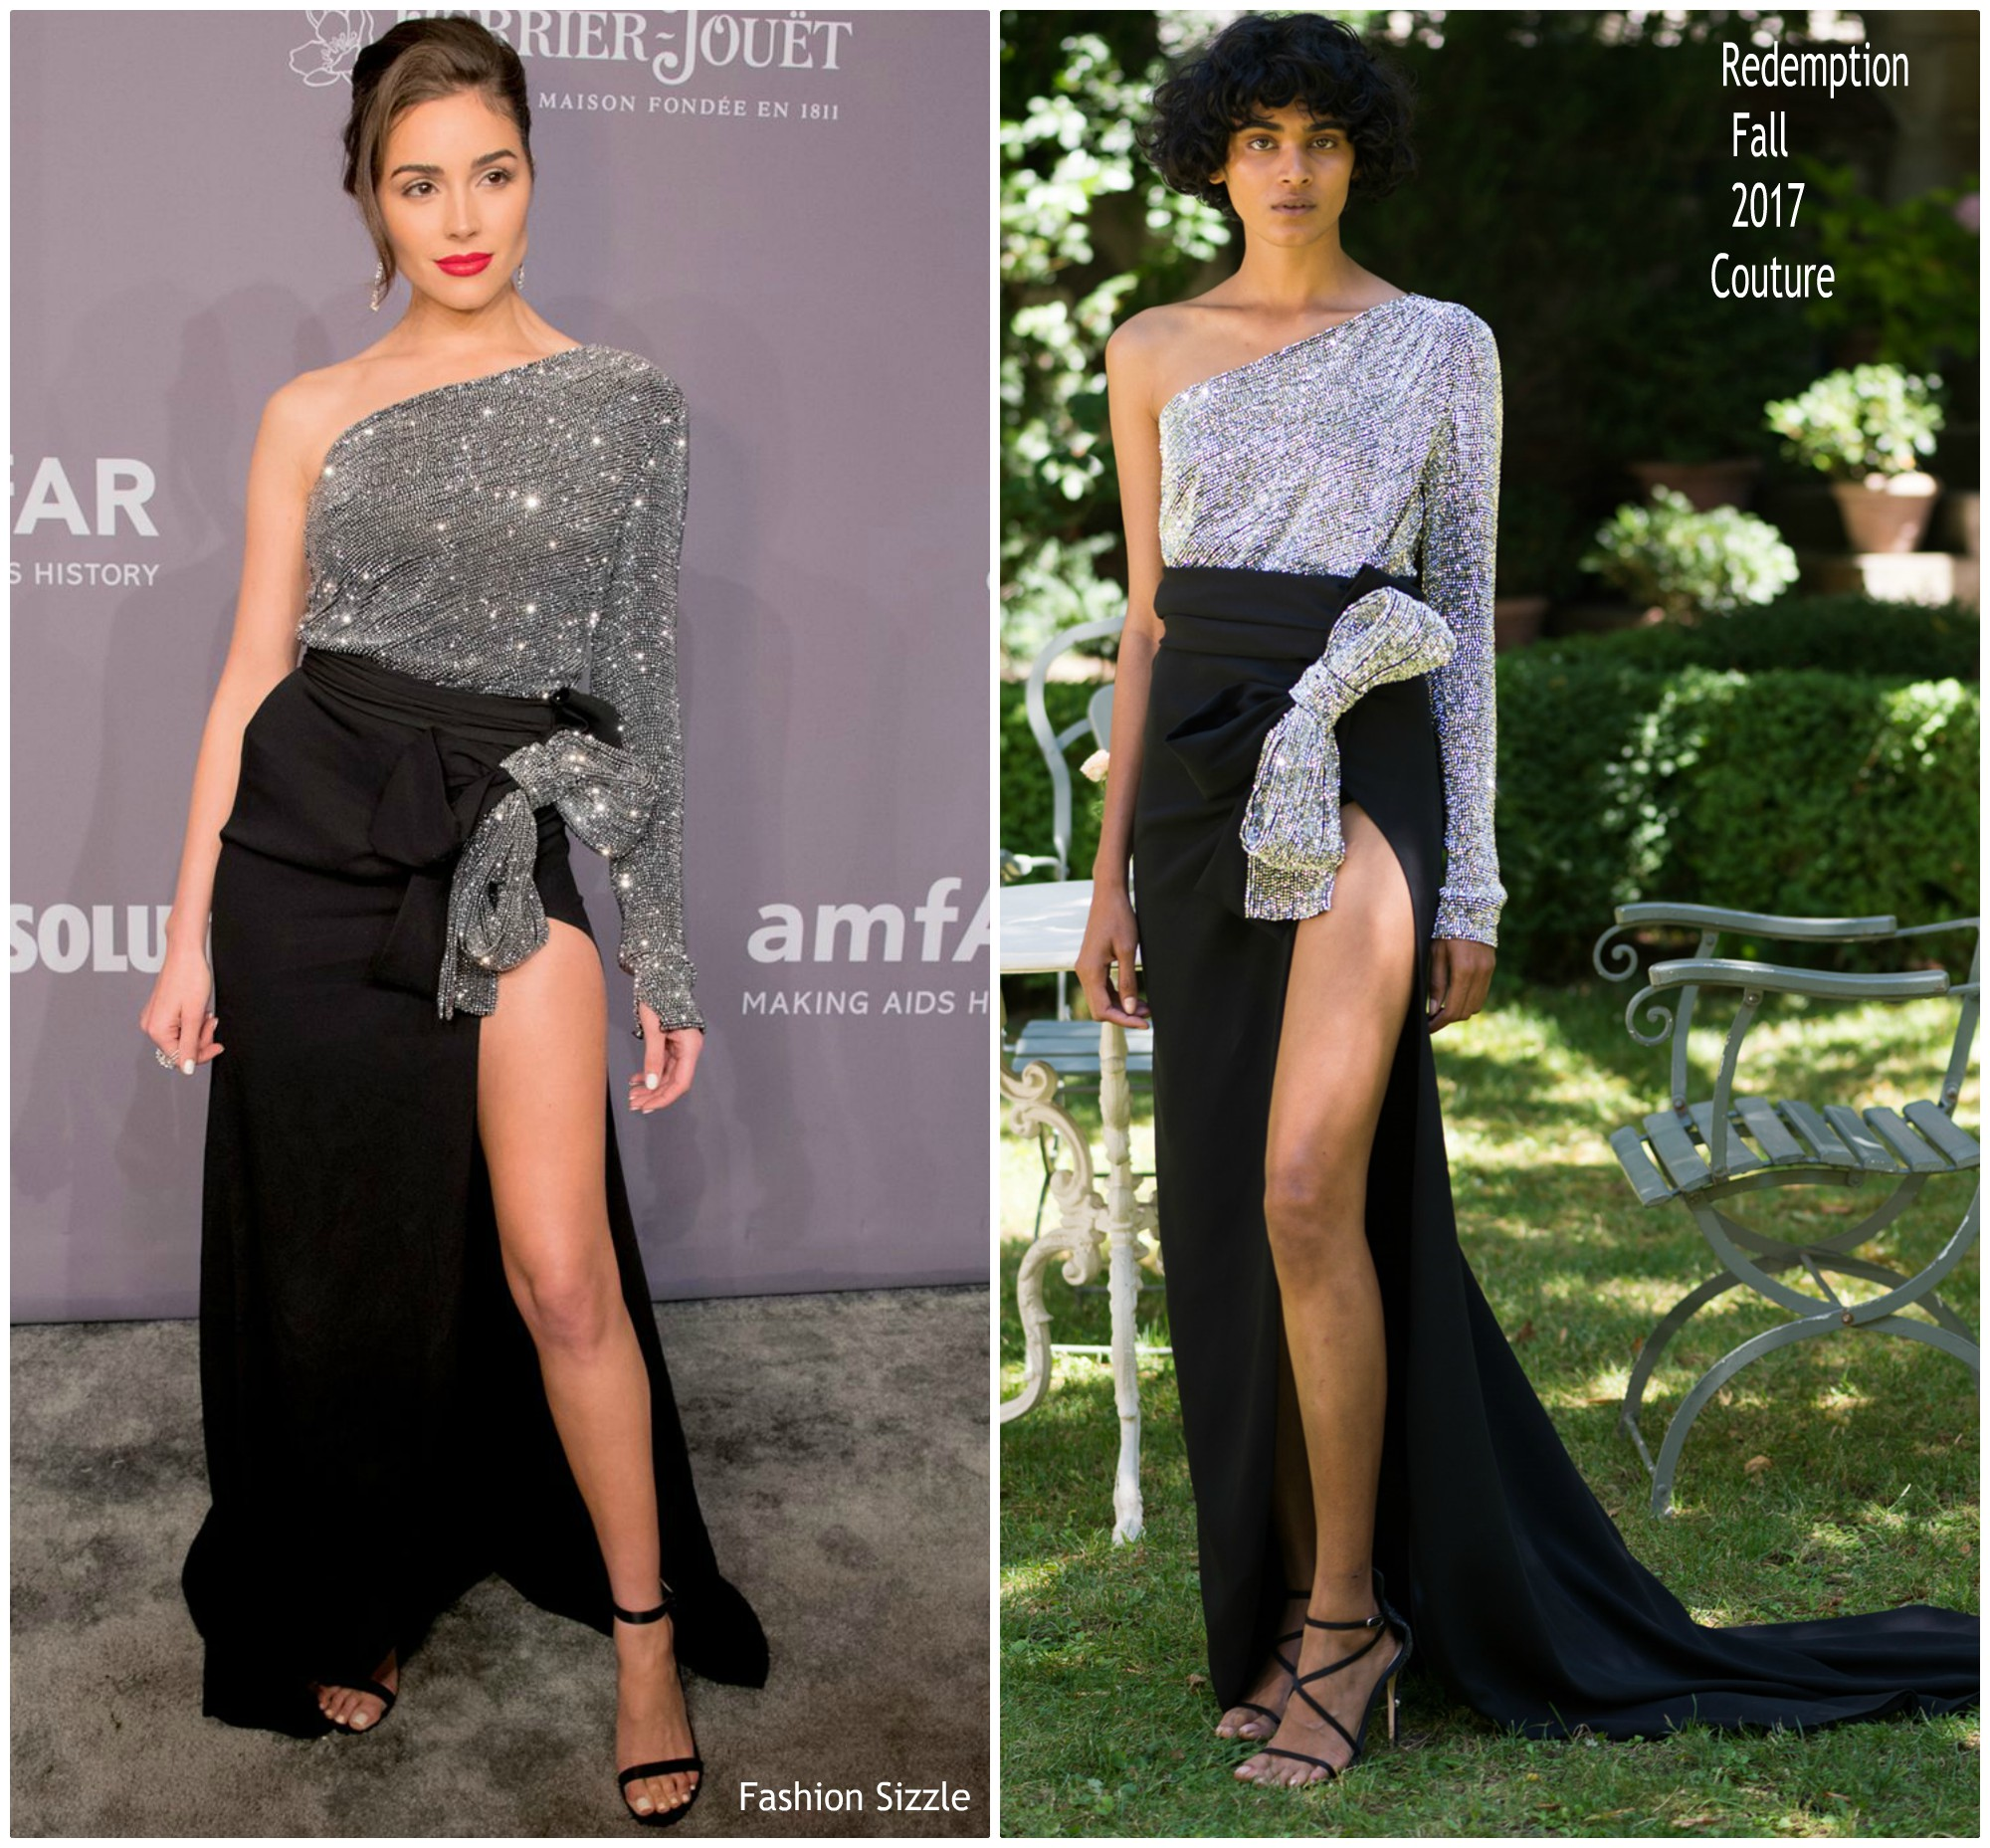 olivia-cilpo-in-redemption-couture-2018-amfar-gala-new-york